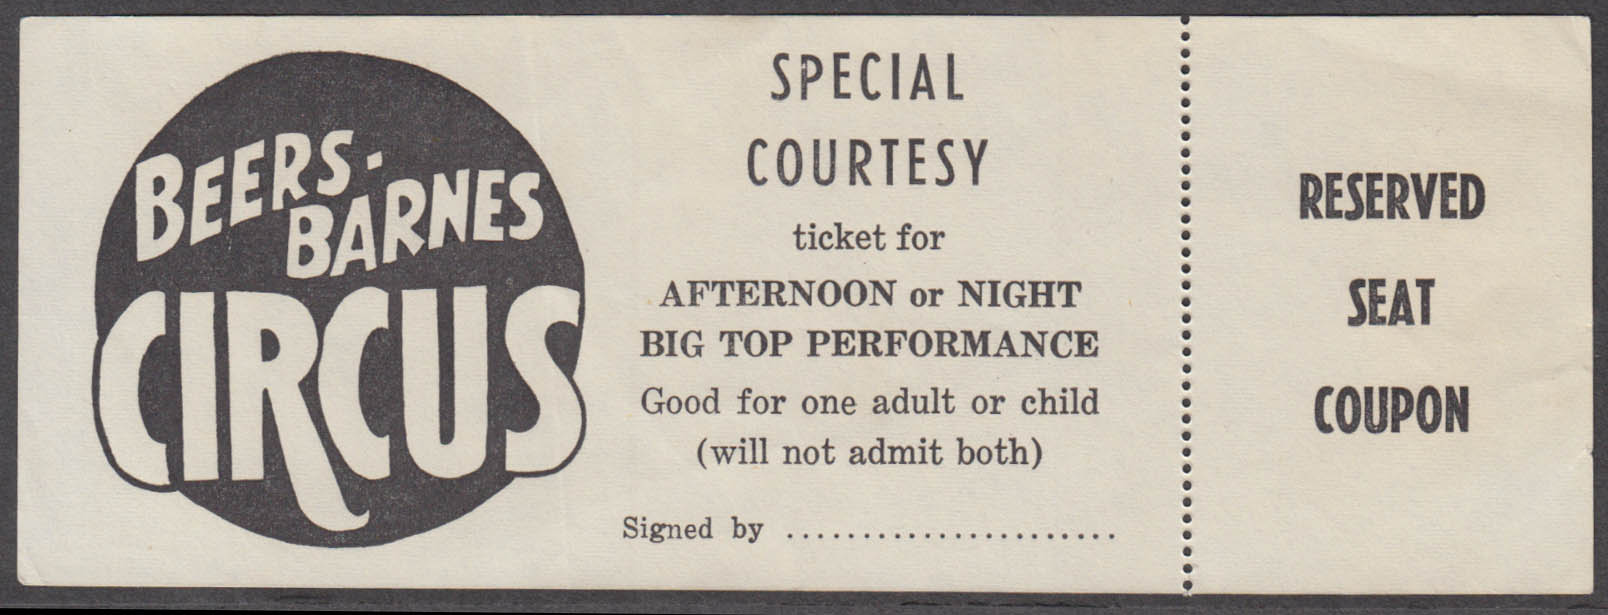 Beers-Barnes Special Courtesy Reserved Seat circus ticket